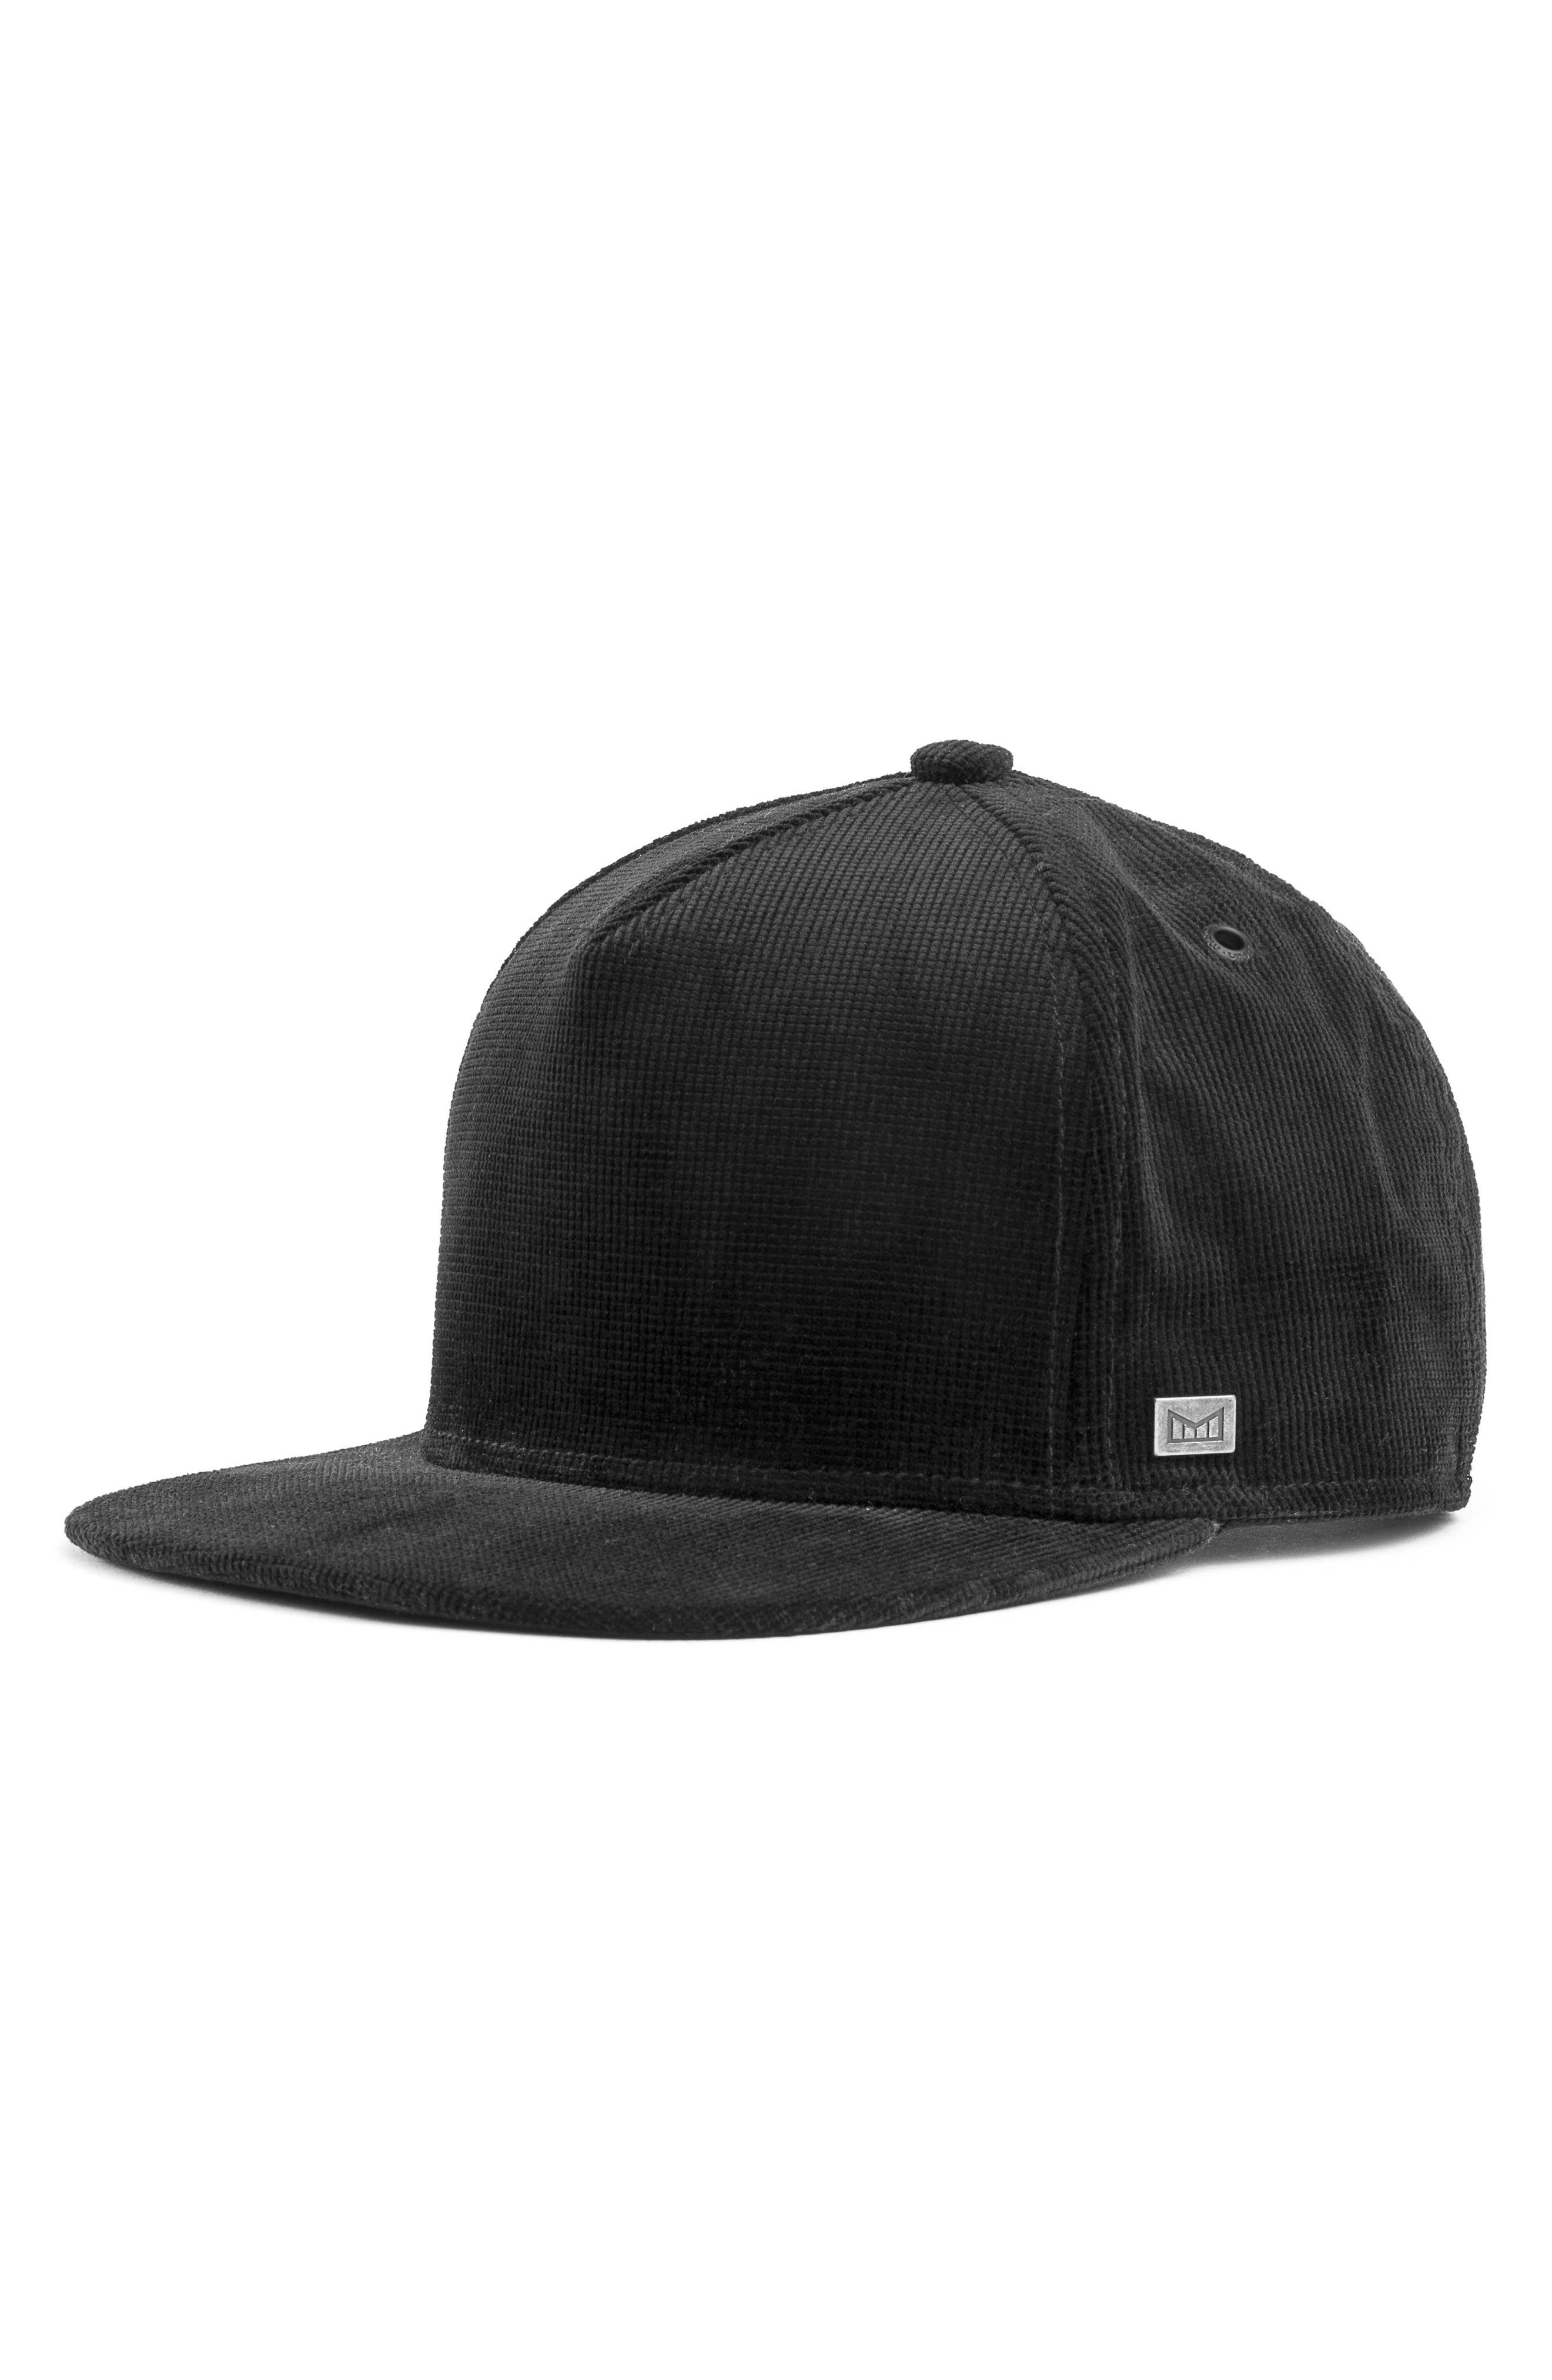 MELIN The Stealth Snapback Baseball Cap